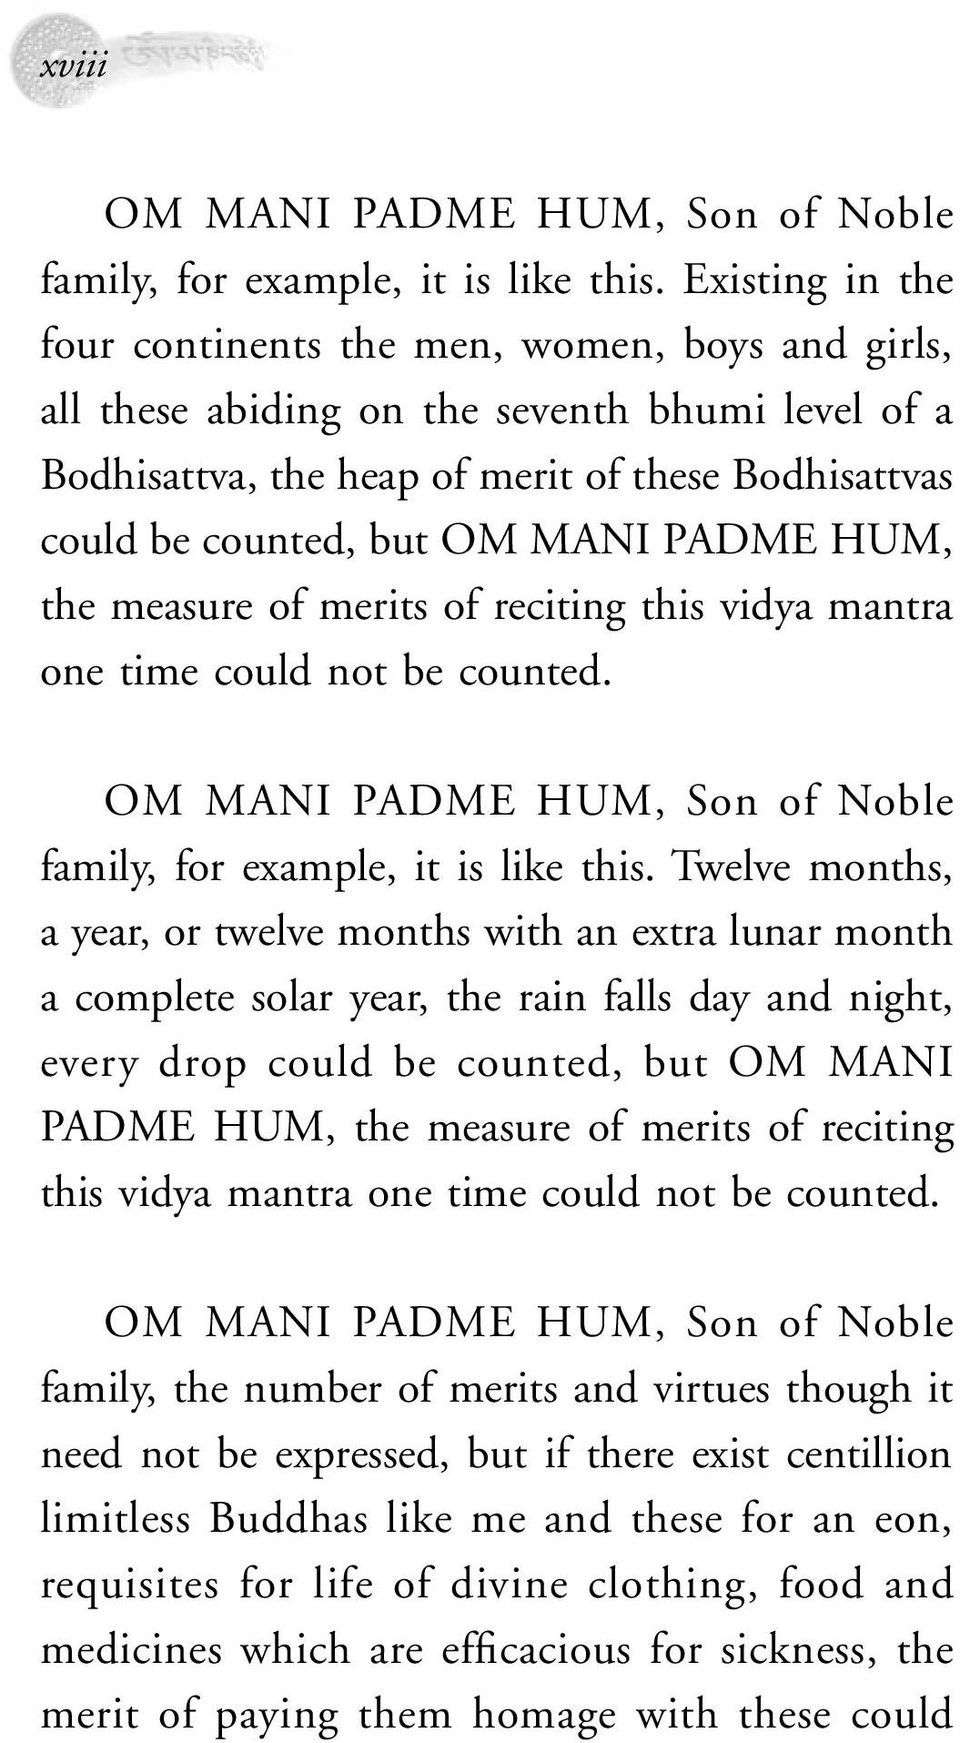 PADME HUM, the measure of merits of reciting this vidya mantra one time could not be counted. OM MANI PADME HUM, Son of Noble family, for example, it is like this.